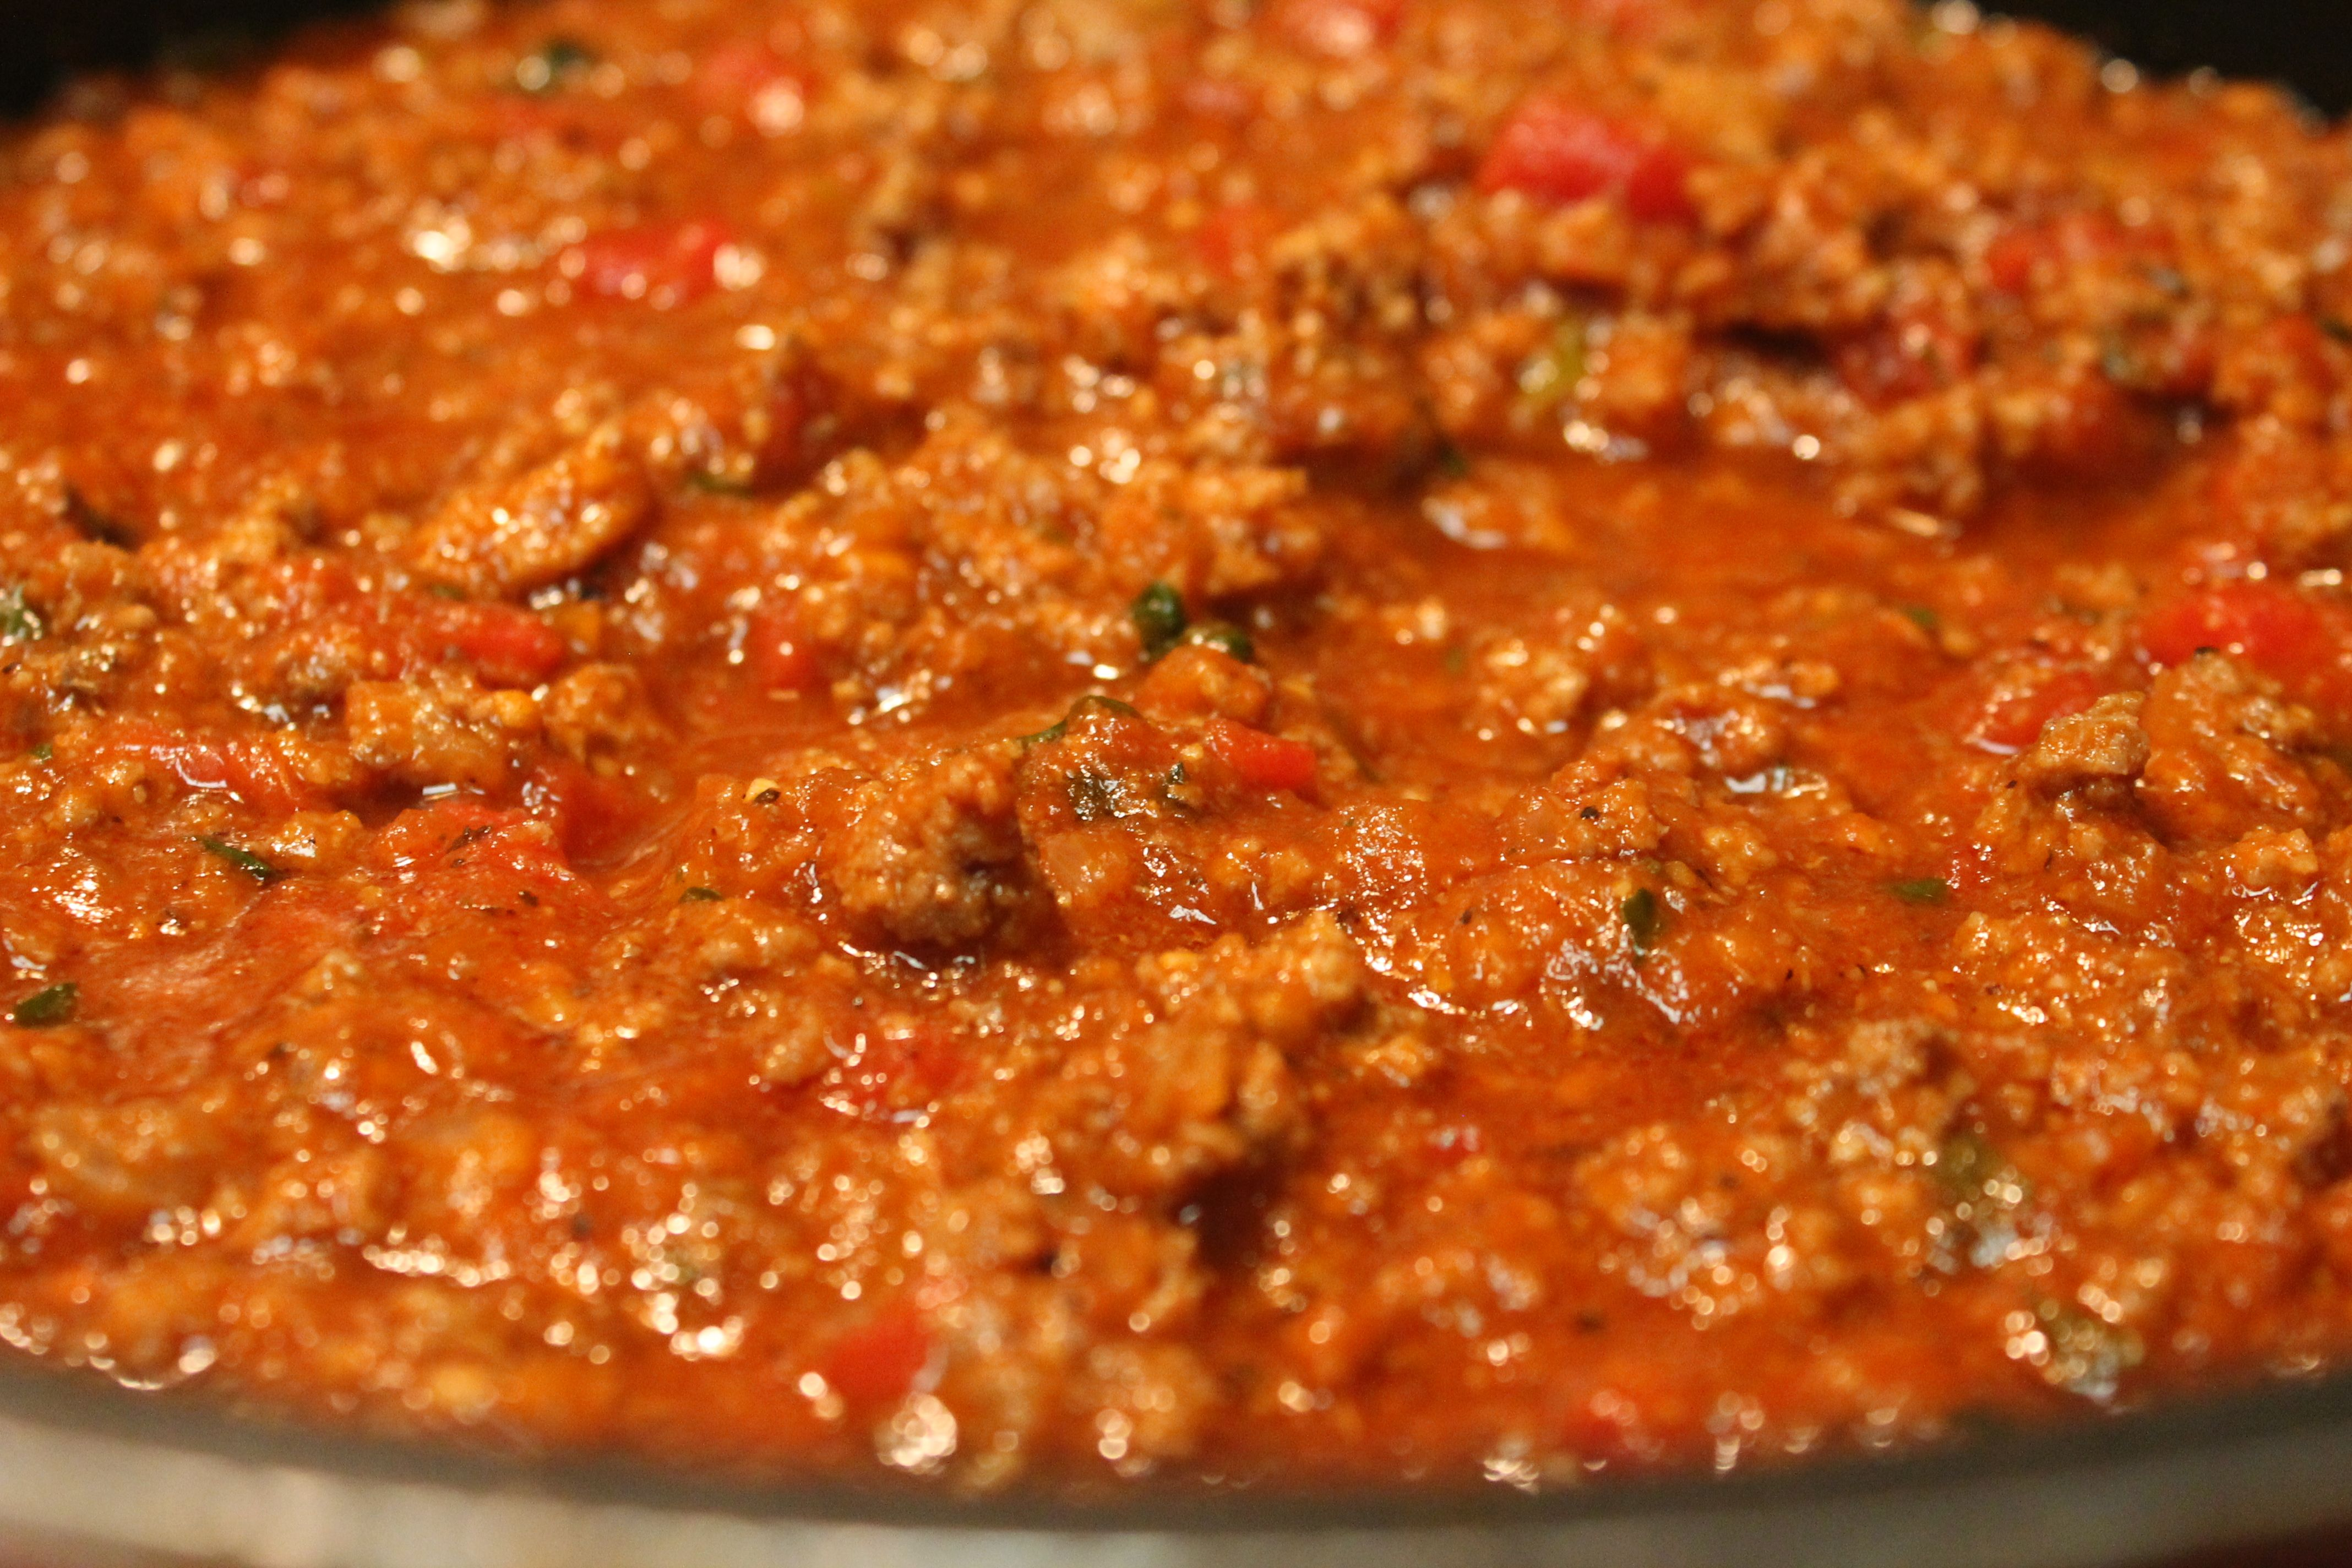 Homemade chili without beans for Chili Cheese Frito Pie